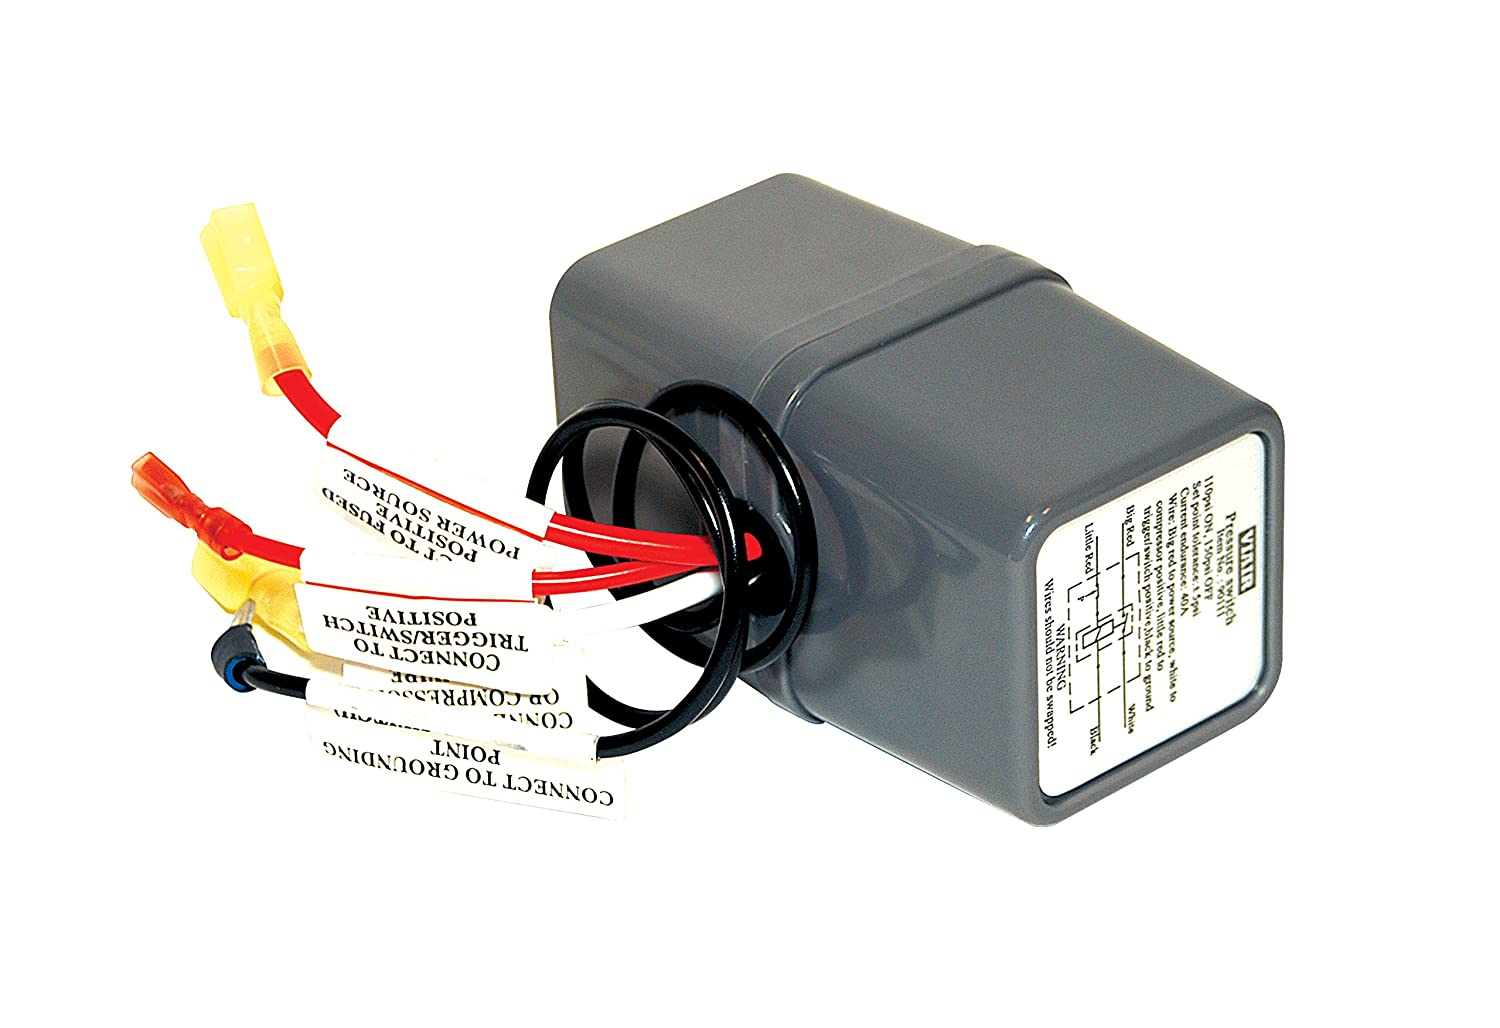 81ytVfoXmhL._SL1500_ amazon com viair 90111 pressure switch with relay automotive viair pressure switch wiring diagram at aneh.co